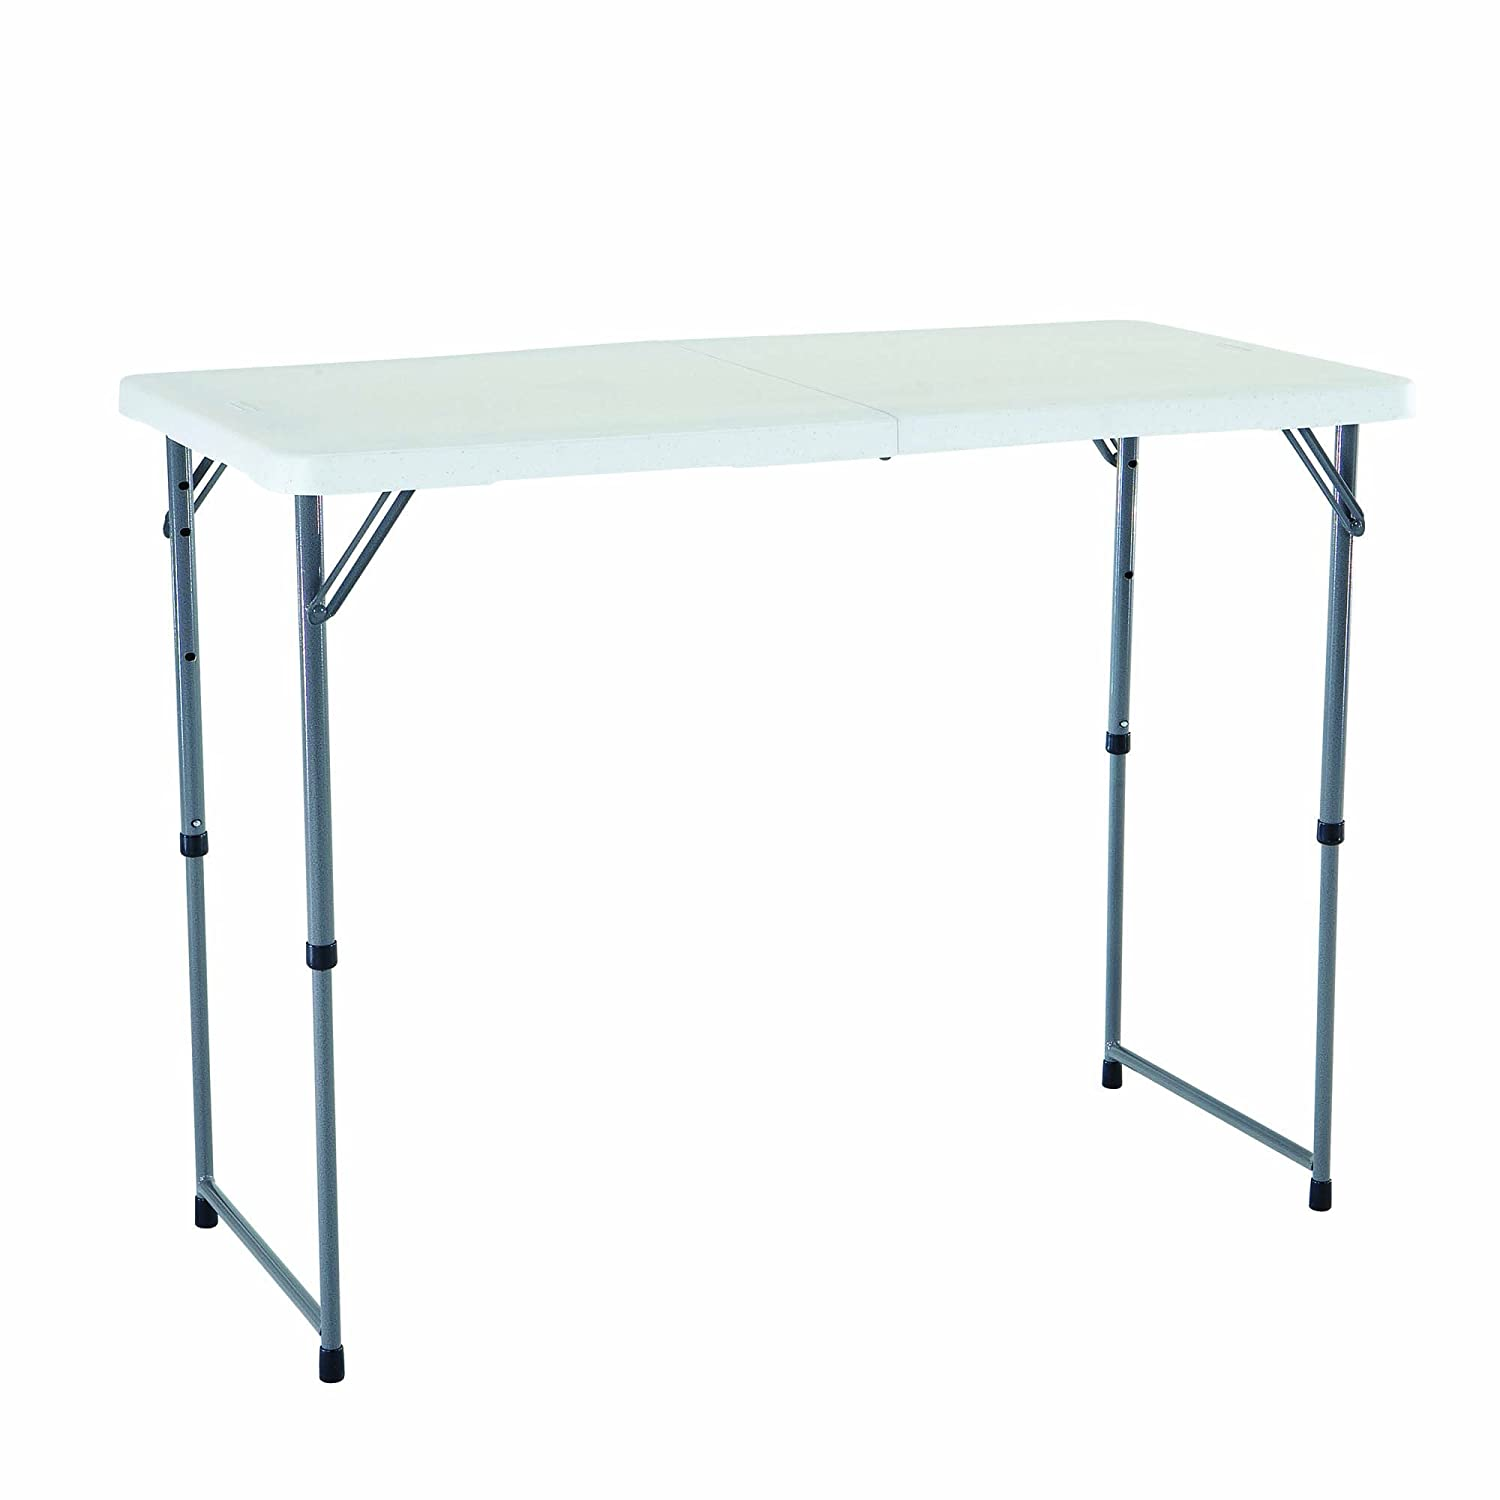 4 foot adjustable height folding table - Amazon Com Lifetime 4428 Height Adjustable Folding Utility Table 48 By 24 Inches White Granite Patio Lawn Garden